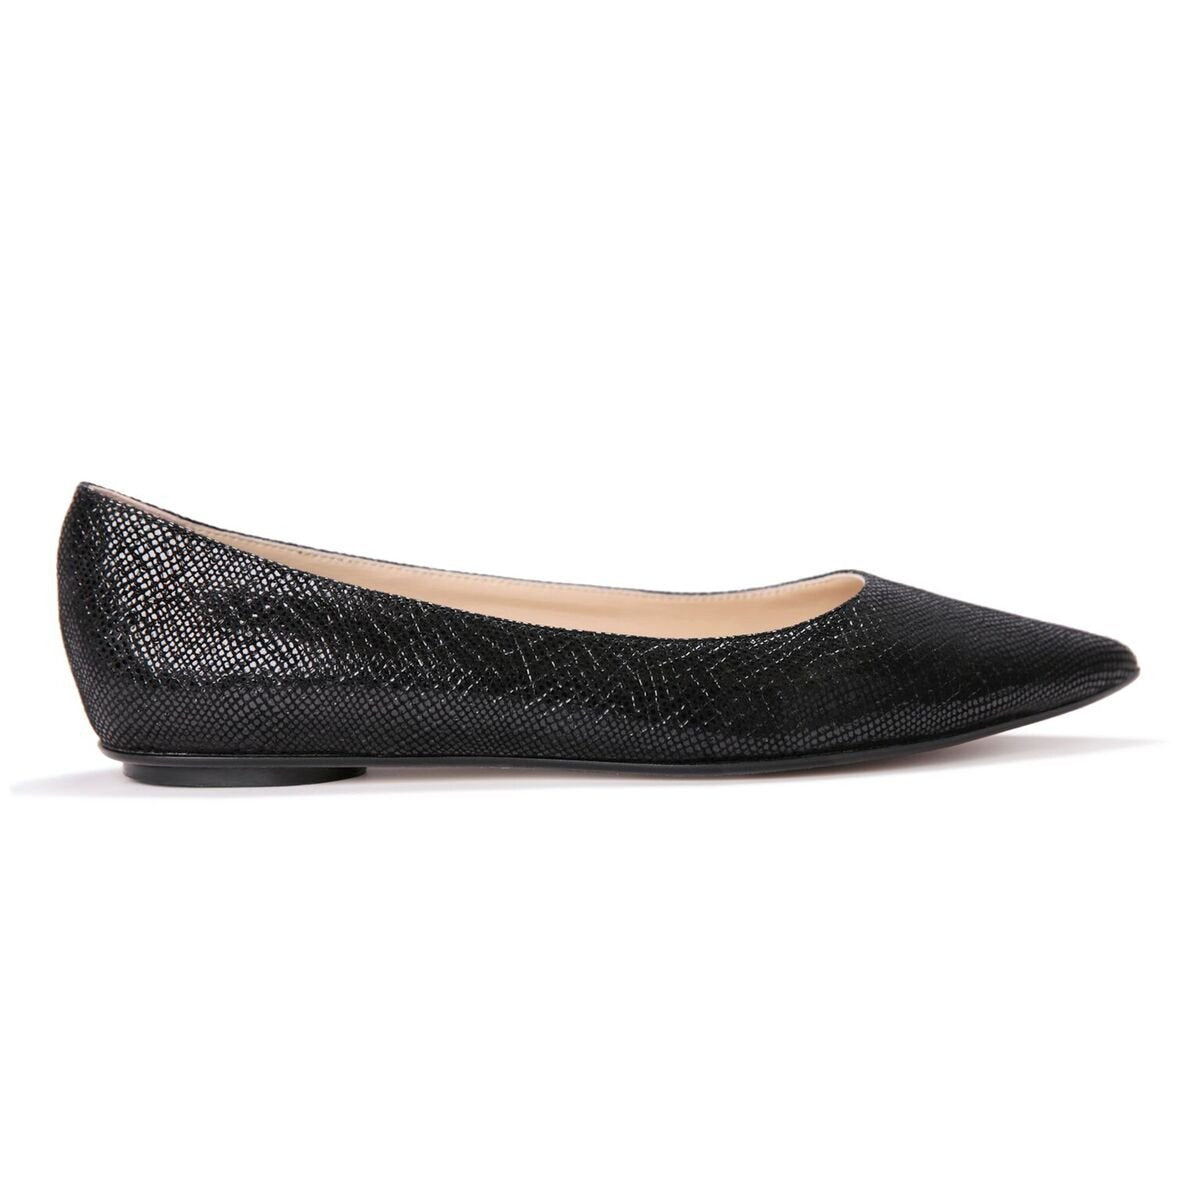 COMO - Karung Nero, VIAJIYU - Women's Hand Made Sustainable Luxury Shoes. Made in Italy. Made to Order.